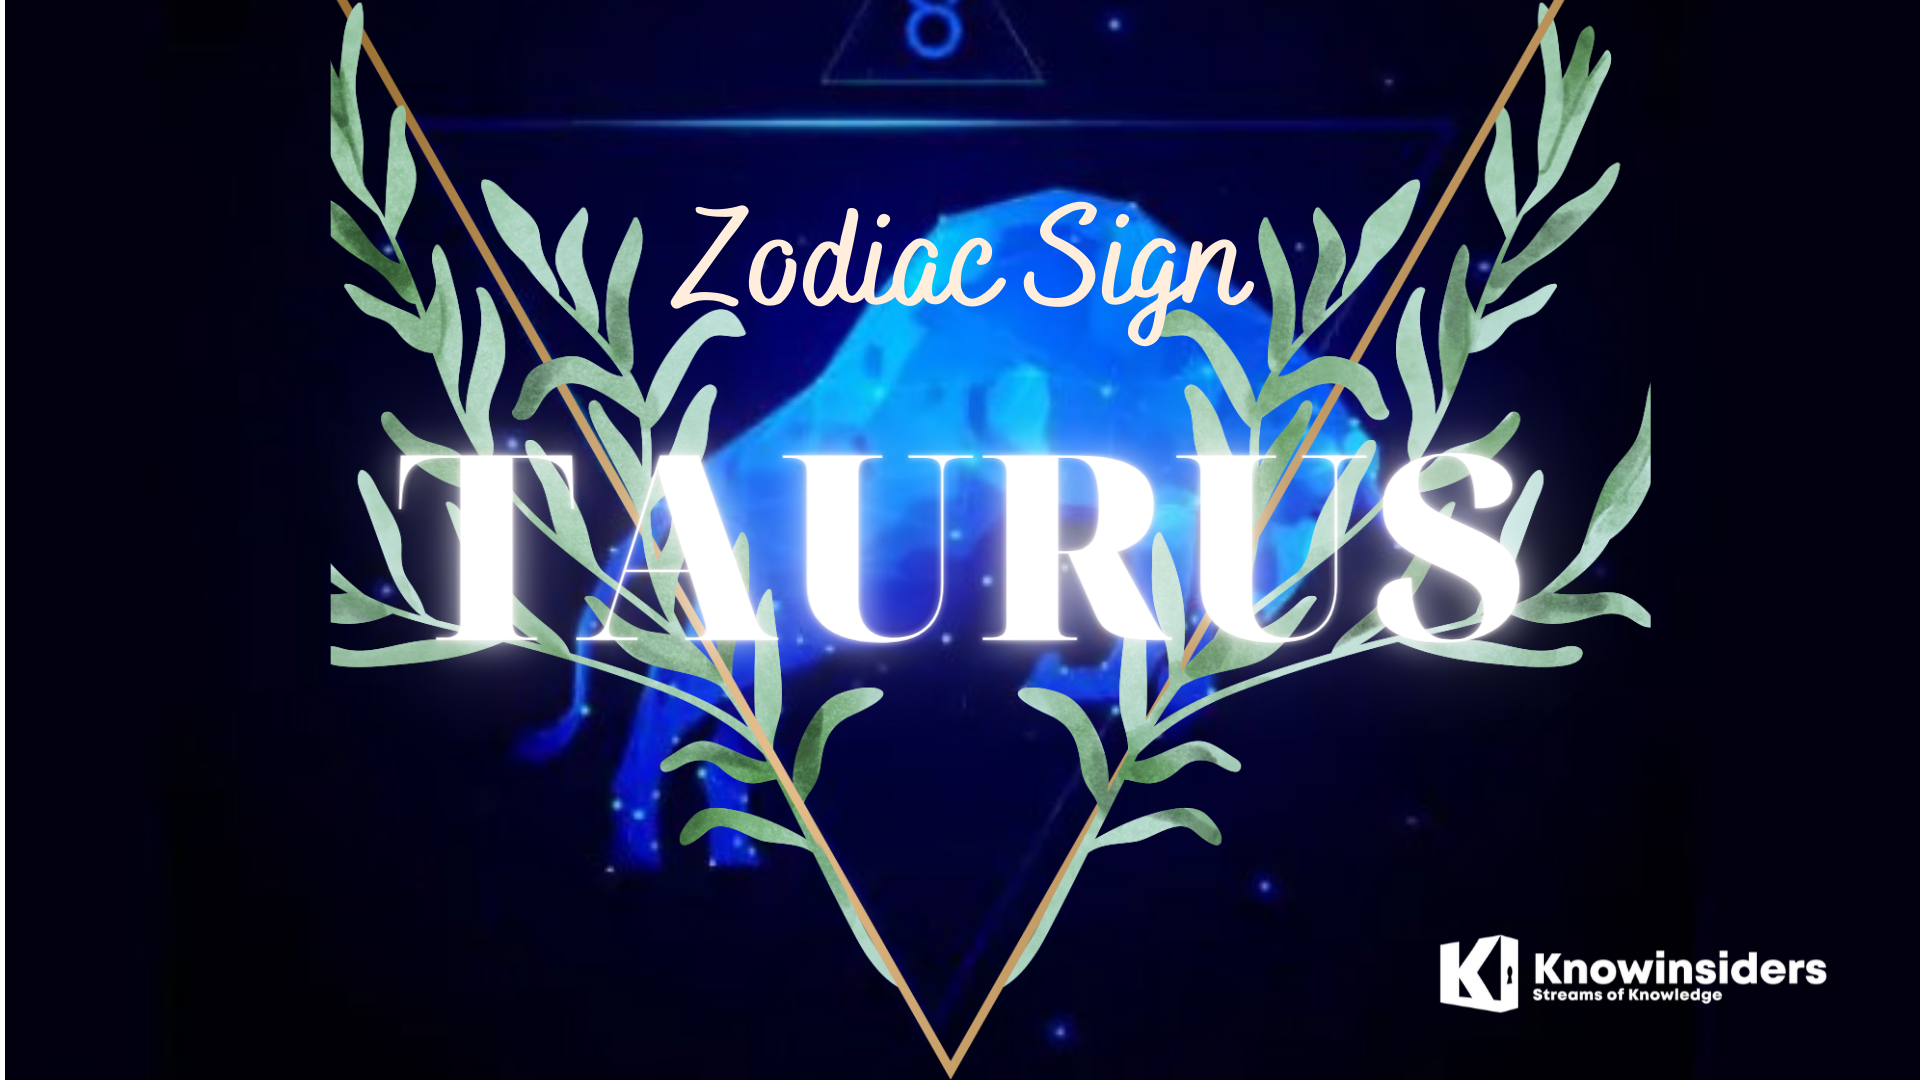 TAURUS Zodiac Sign: BirthDay, Meaning and Personal Traits